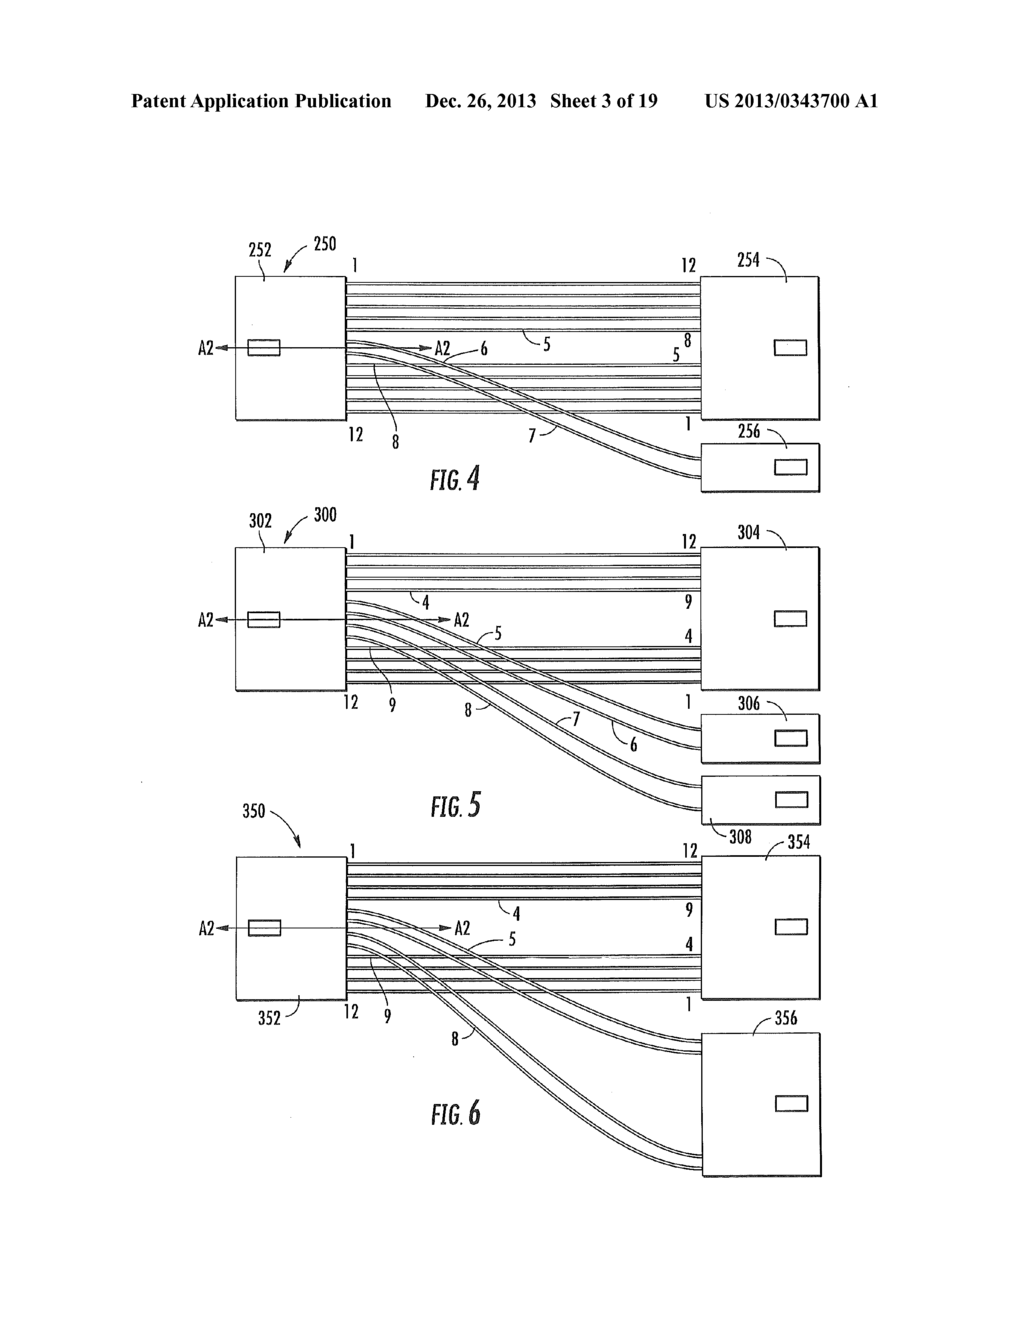 Fiber Optic Trunk Cable Diagram Trusted Wiring Diagrams Wire Optical Array Connectivity System For Multiple Transceivers Connector Symbols